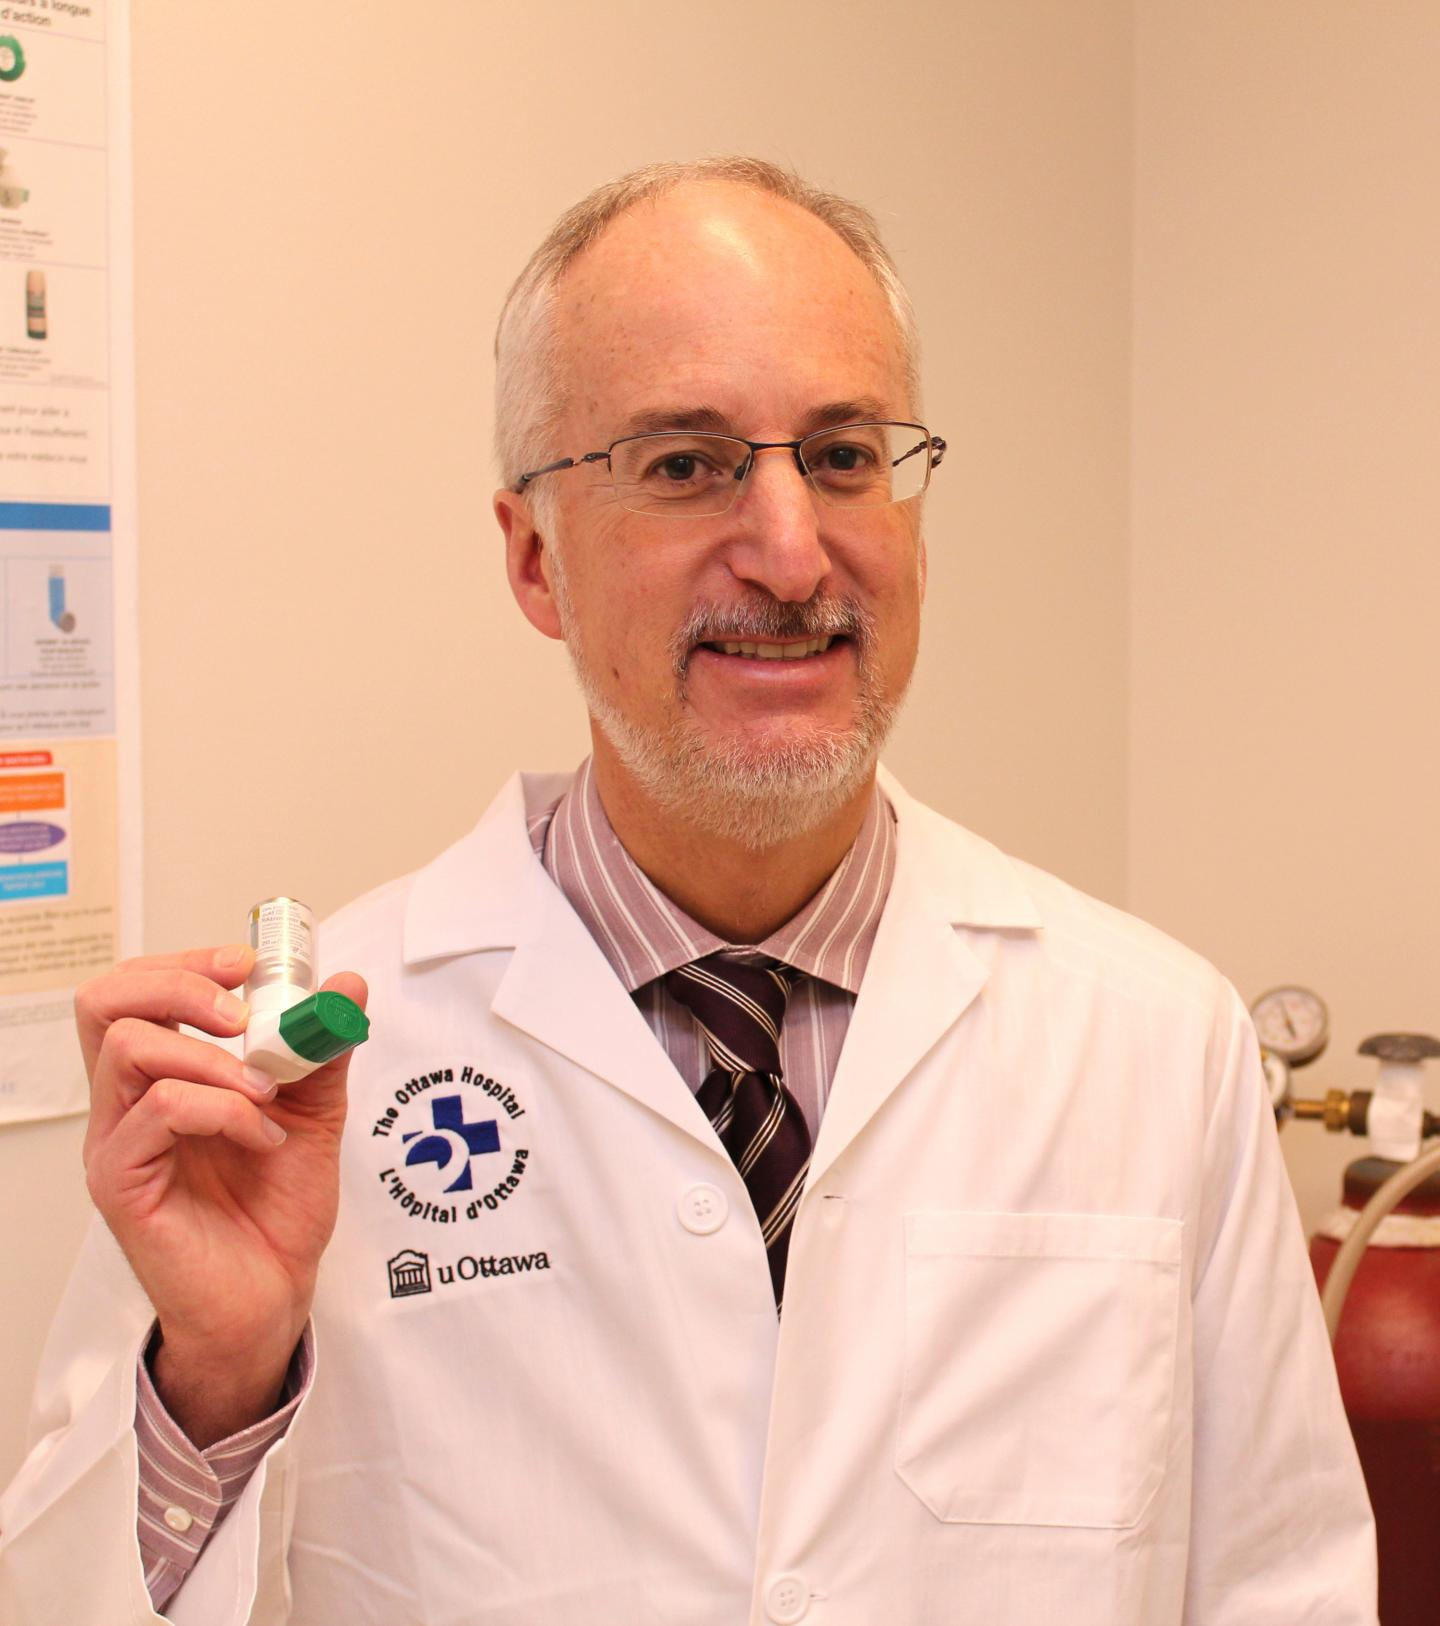 Study Finds 33 Percent of Adults Recently Diagnosed with Asthma Do not Have It